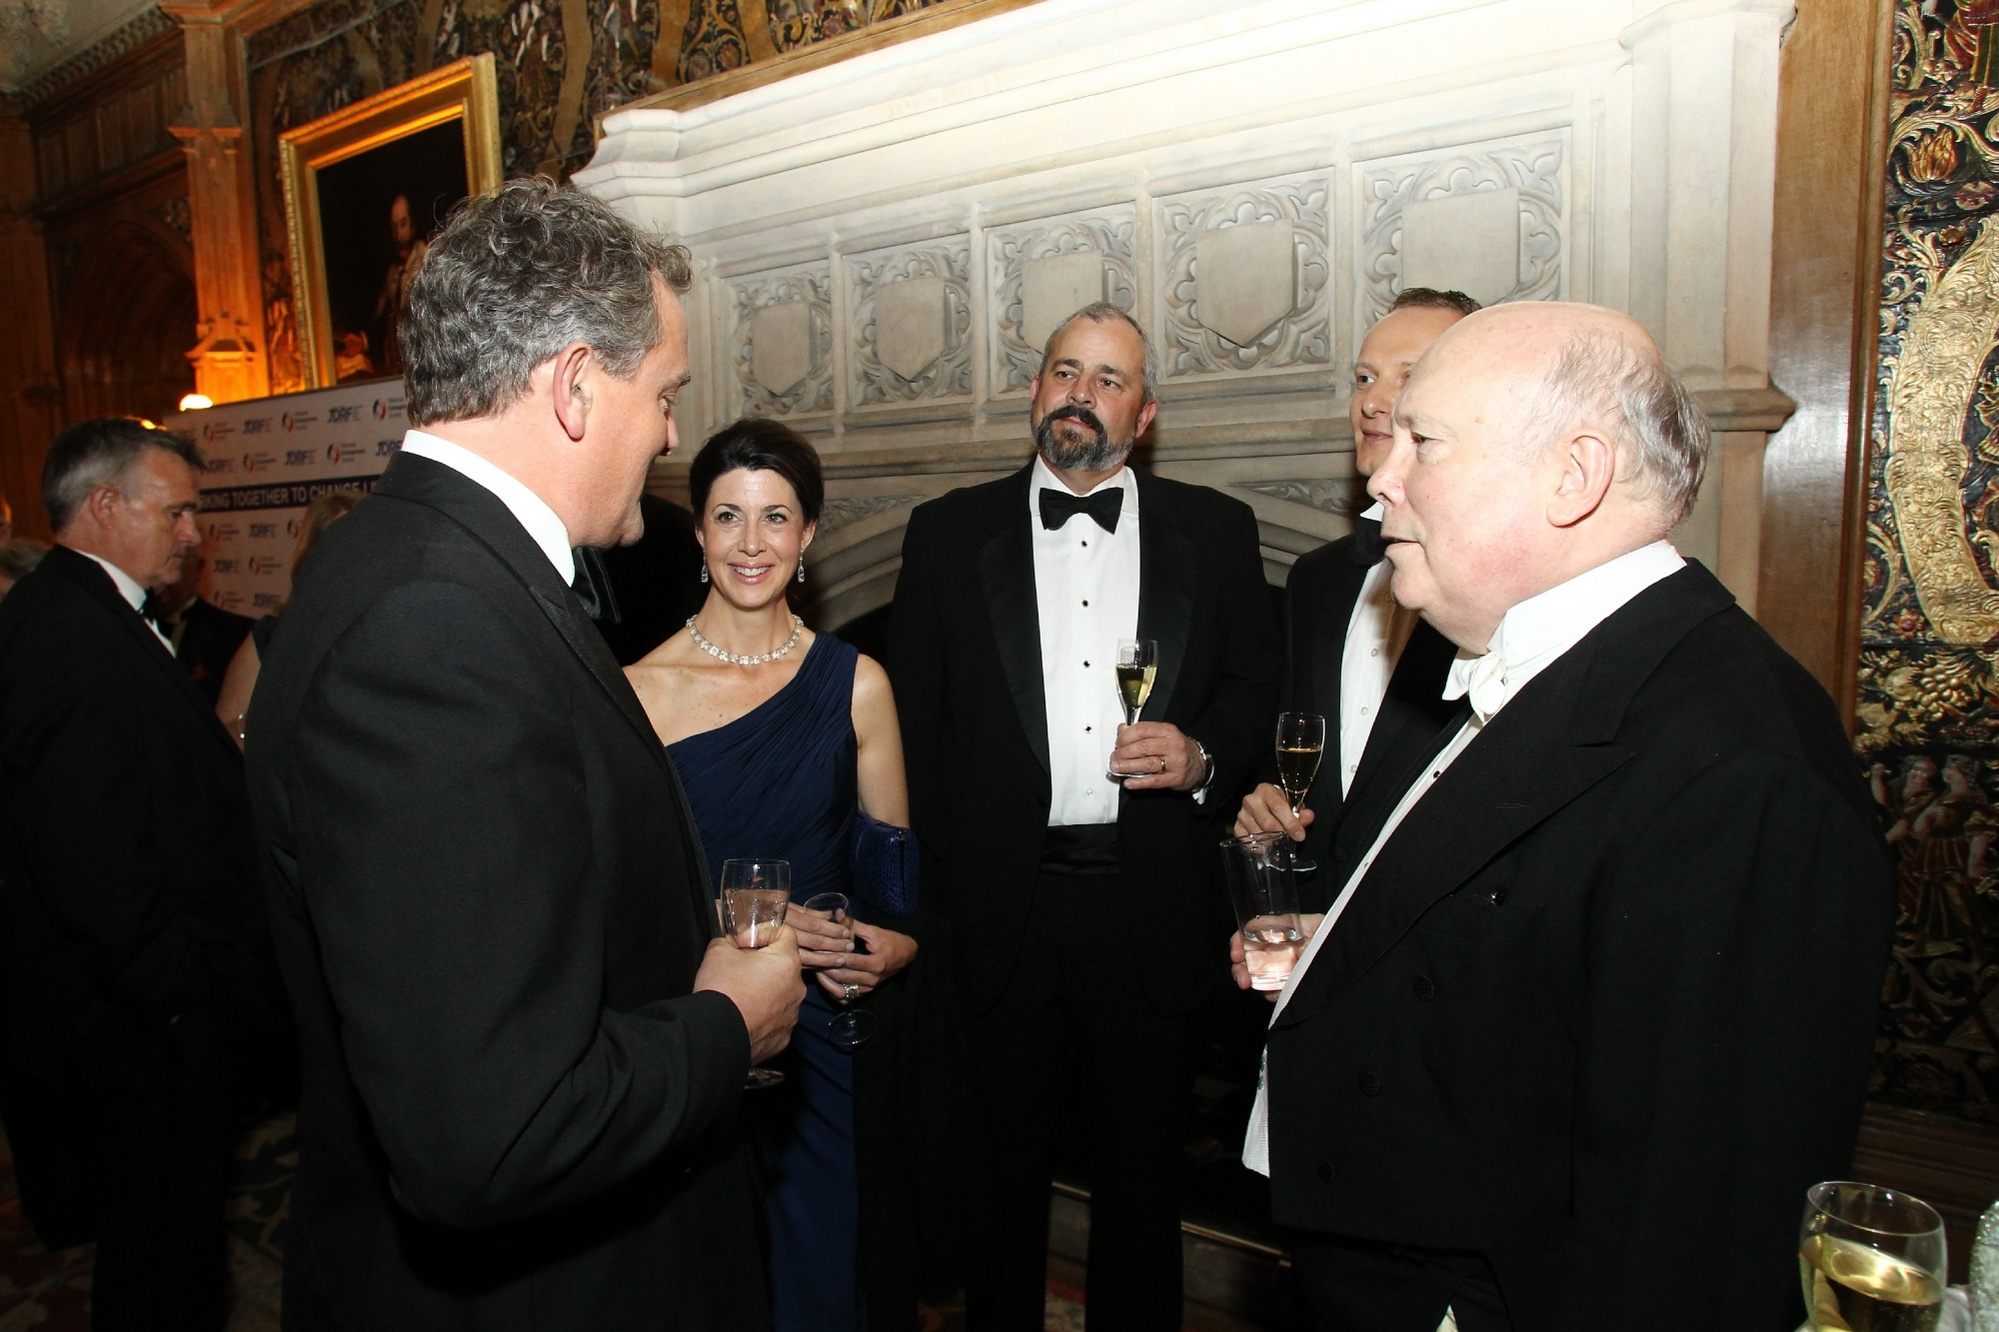 Highclere Castle (Downton Abbey): Julian Fellowes, Hugh Bonneville (Lord Grantham) with Morpho Founder Neil Anthony Richmond